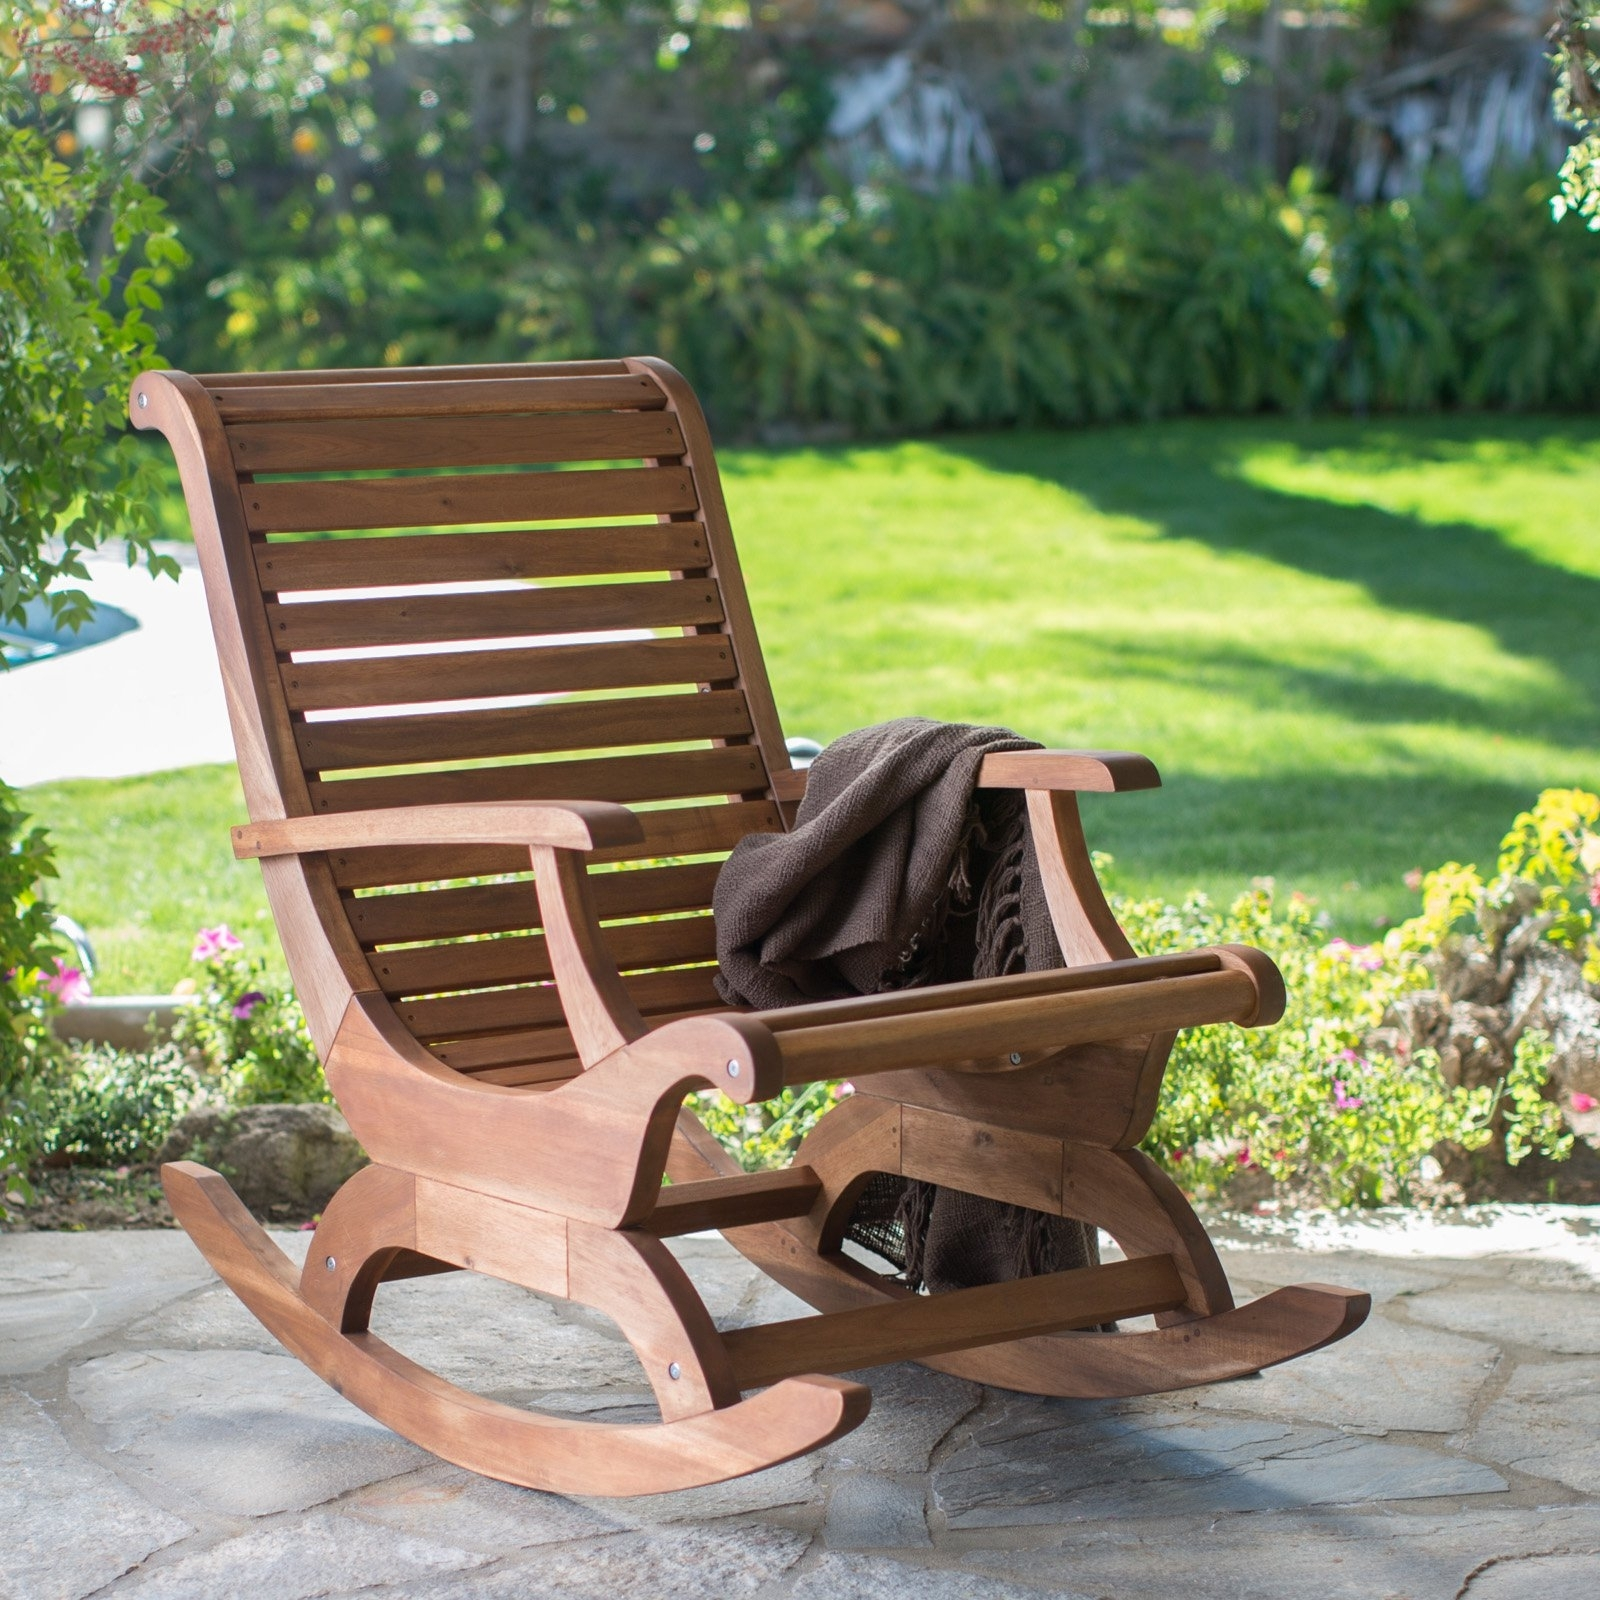 Belham Living Avondale Oversized Outdoor Rocking Chair – Natural Throughout Outdoor Rocking Chairs (View 2 of 15)